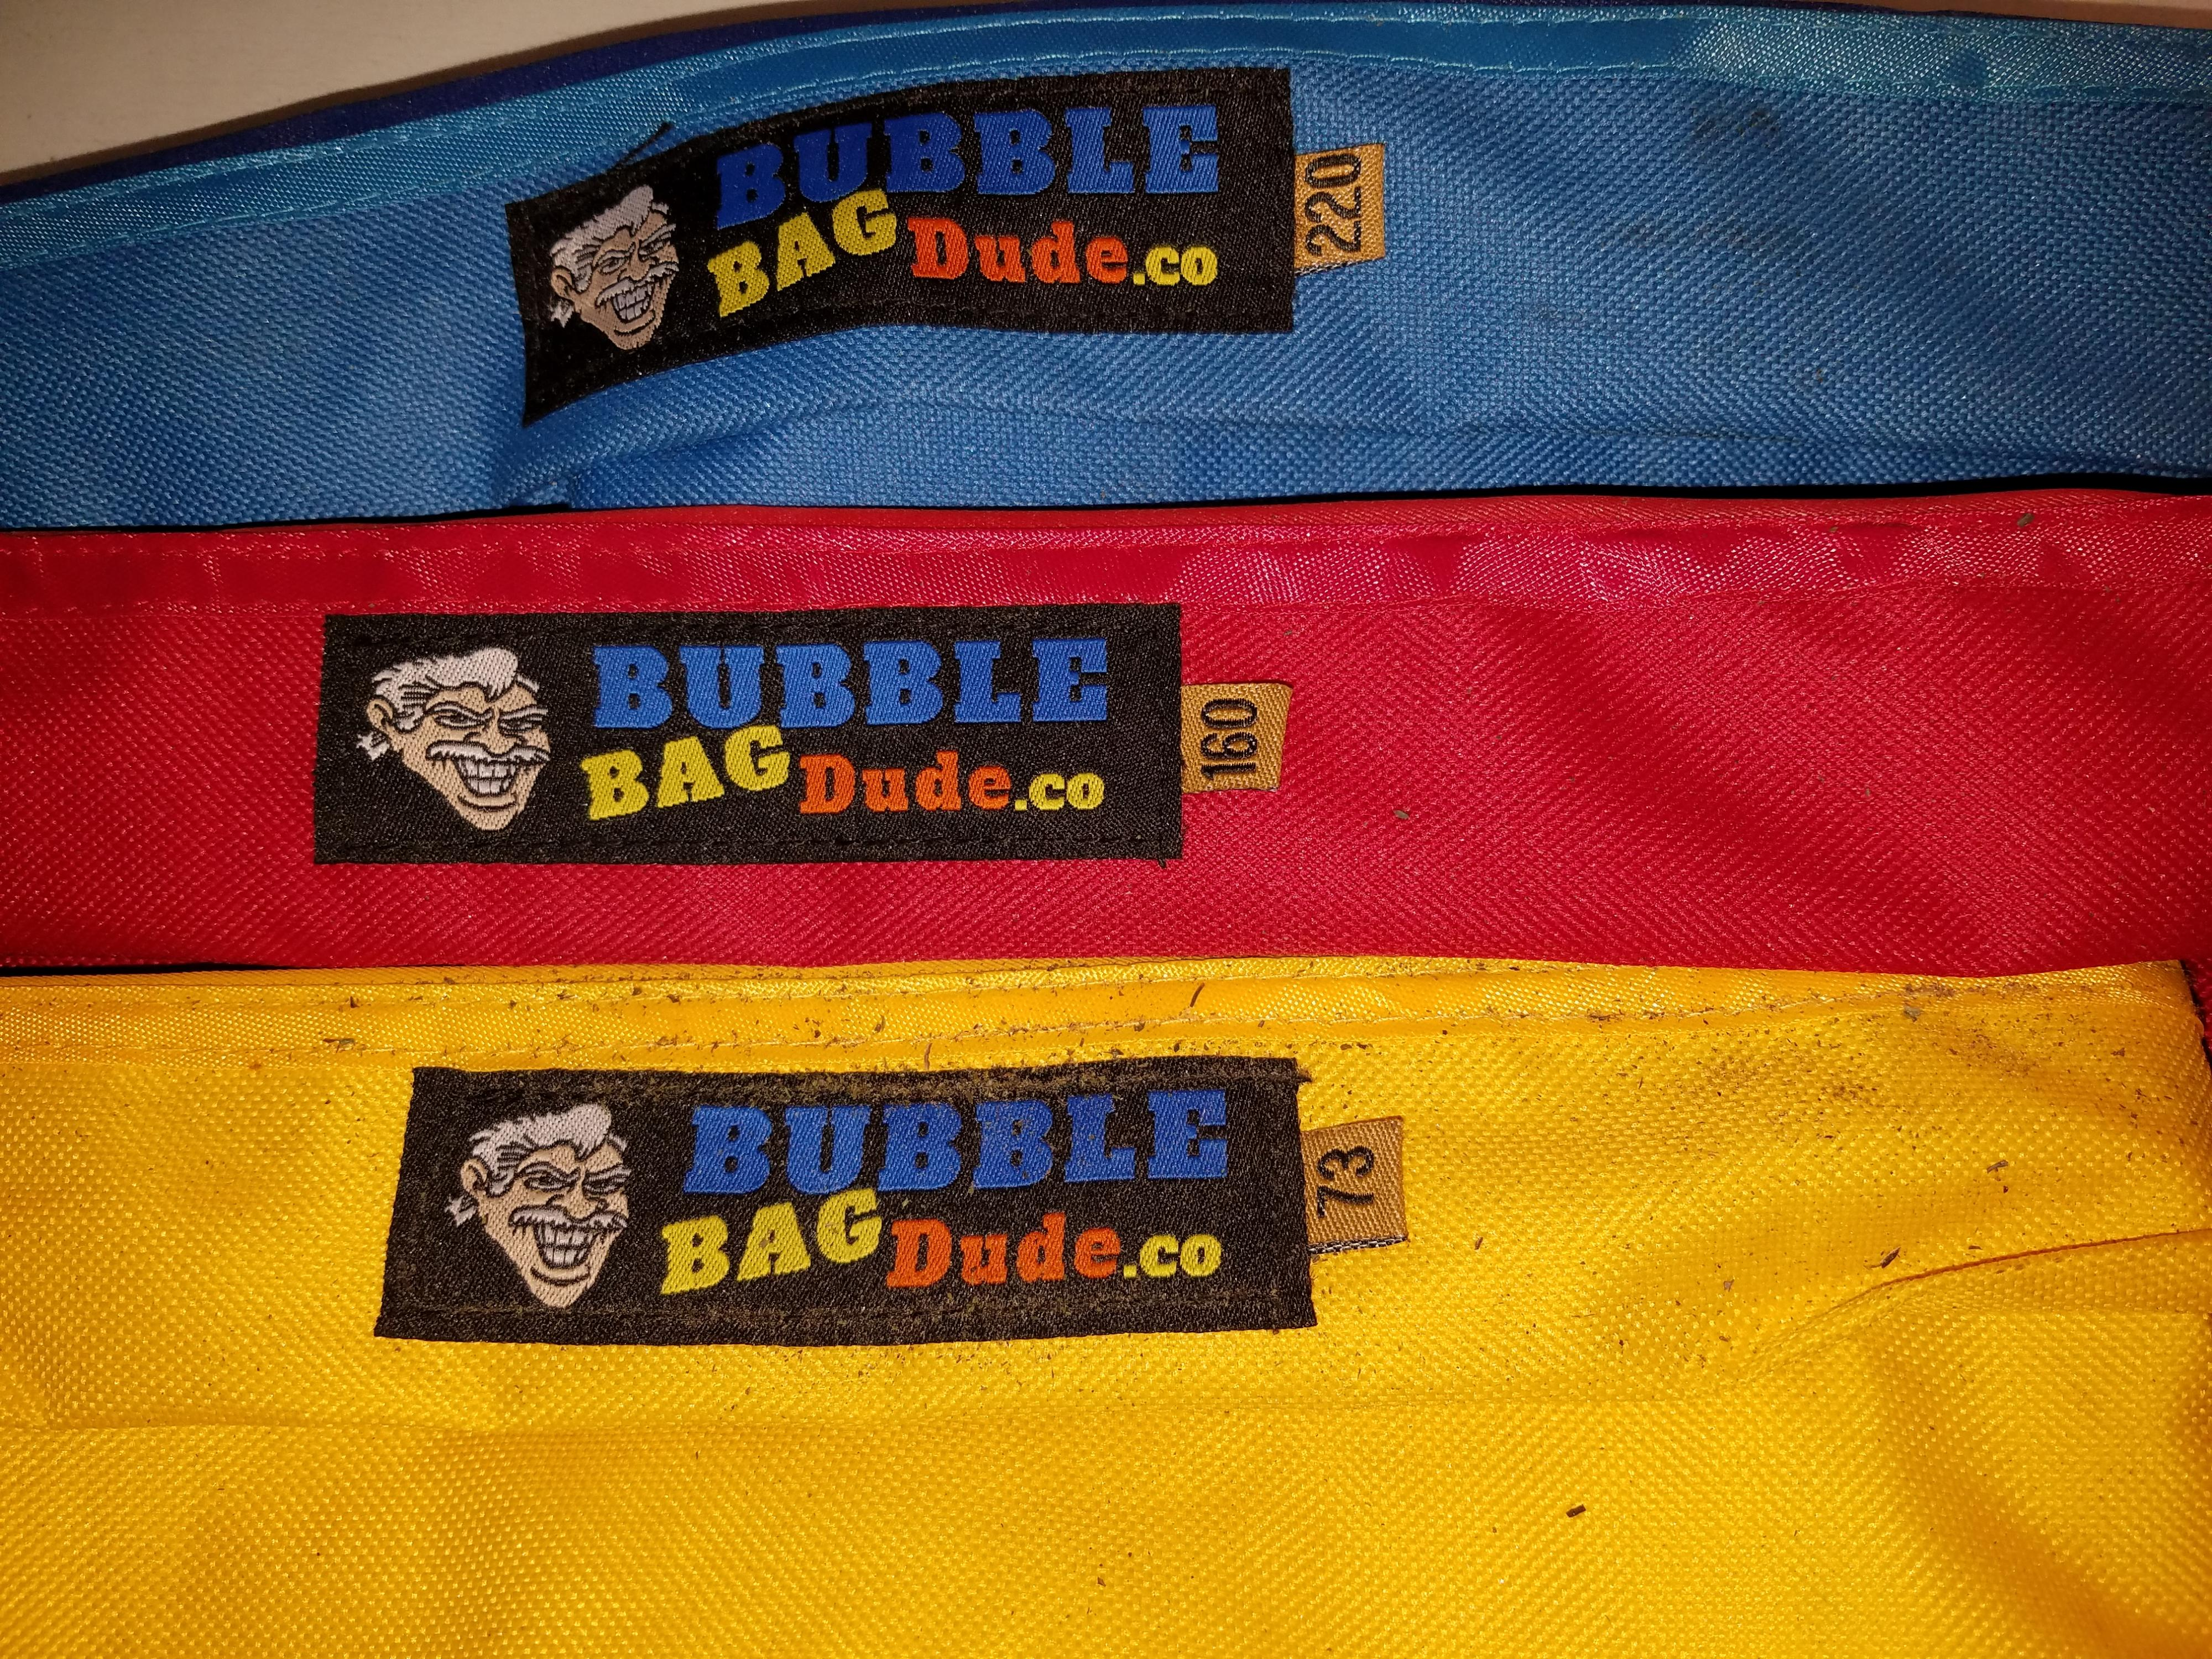 Bought a set of 5 Bubbleman Dude bags, but only used 3